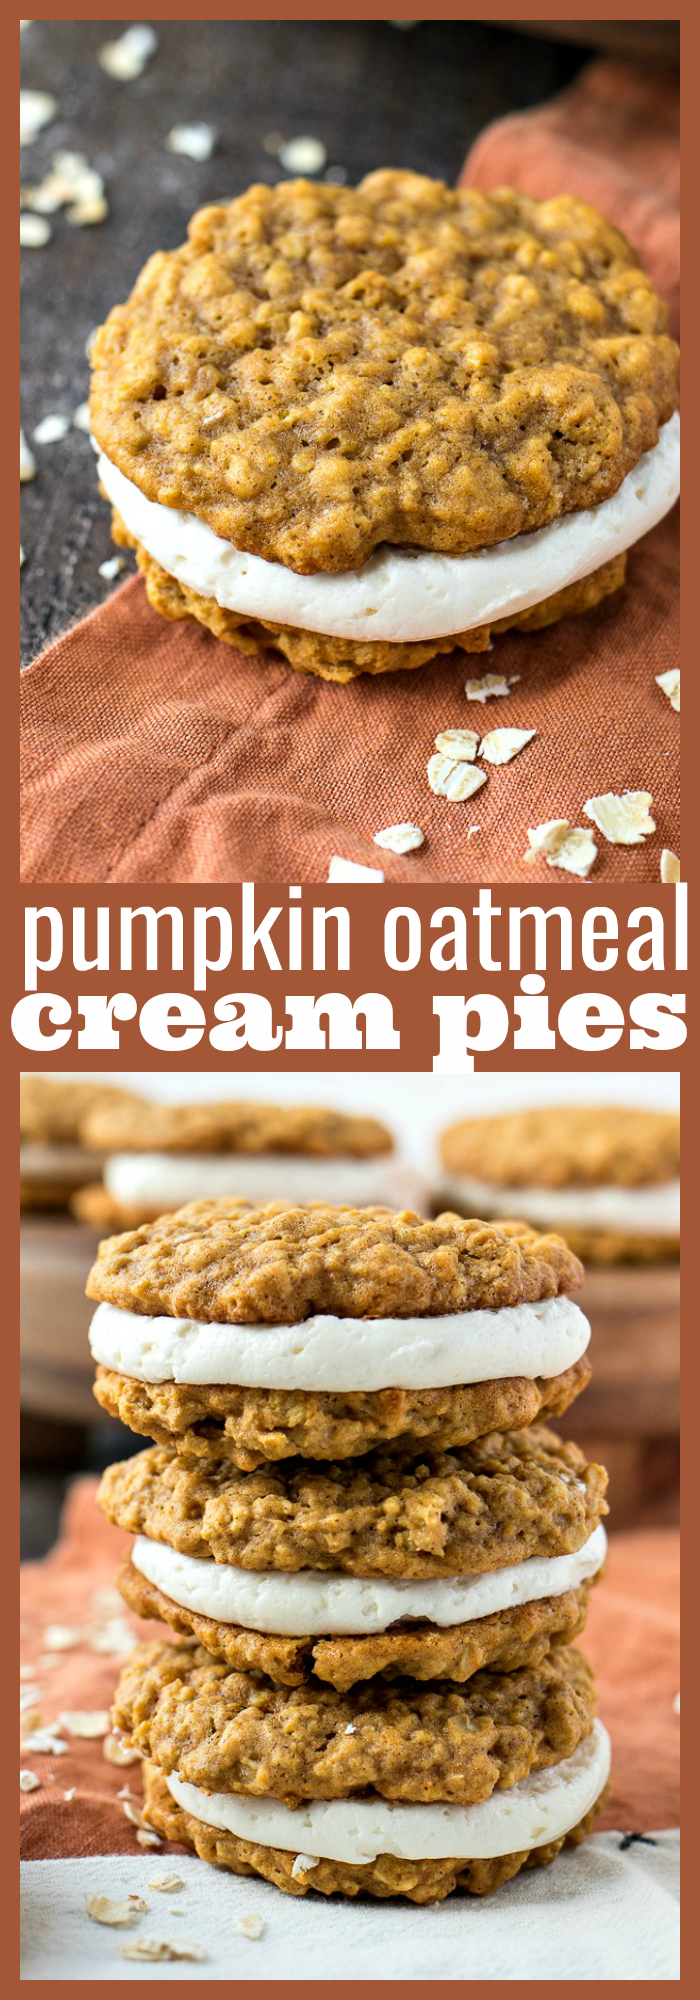 Pumpkin Oatmeal Cream Pies – Vanilla frosting is sandwiched between two chewy pumpkin oatmeal cookies to make the perfect spiced cookie for the fall season #recipe #fall #pumpkin #cookies #oatmeal #cinnamon #dessert #falldesserts